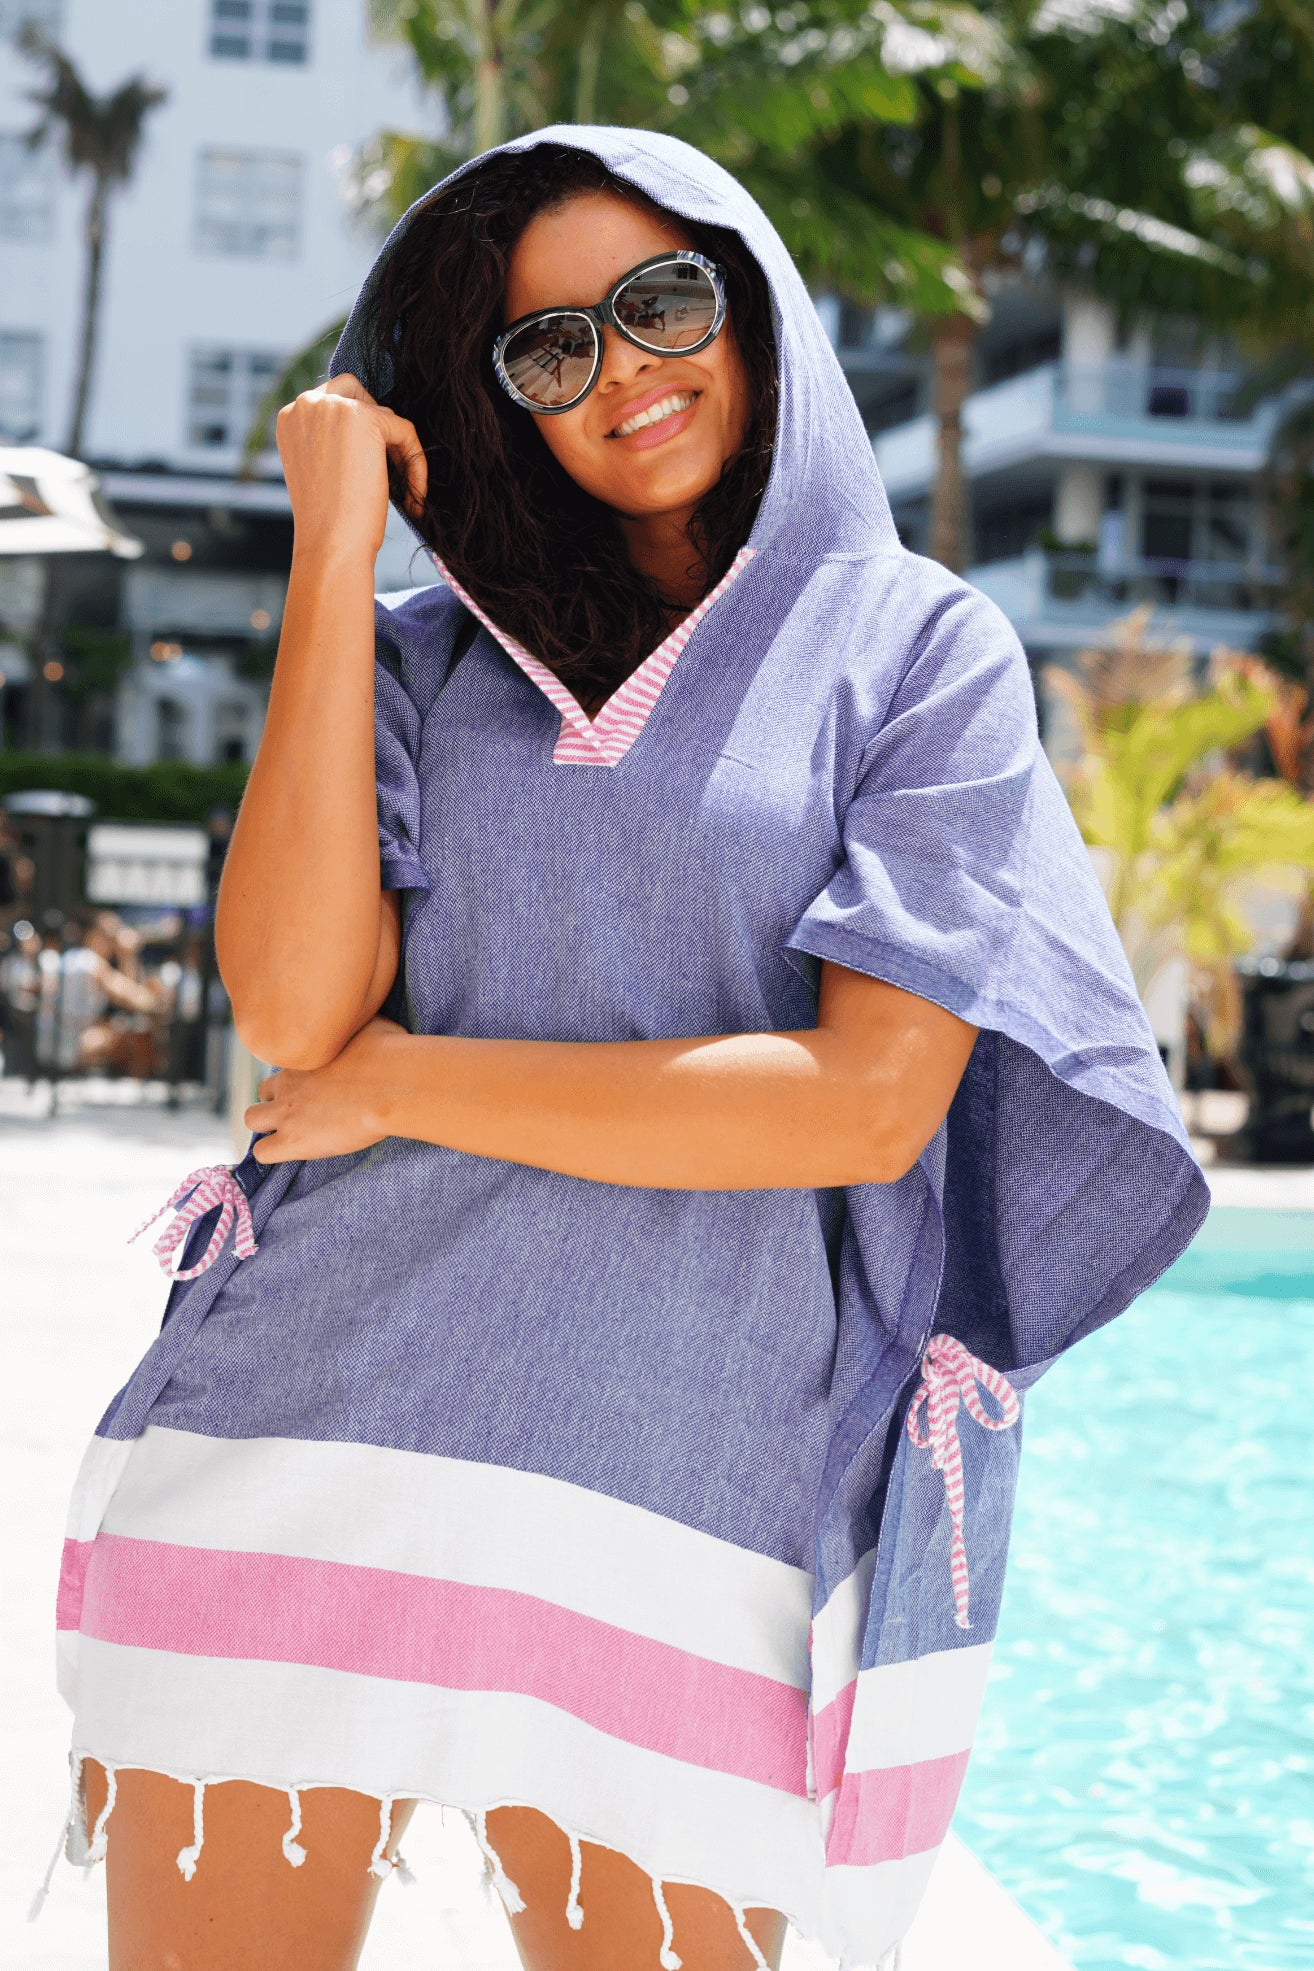 Oceana Quick Dry Hooded Cover Up - milogiftshop